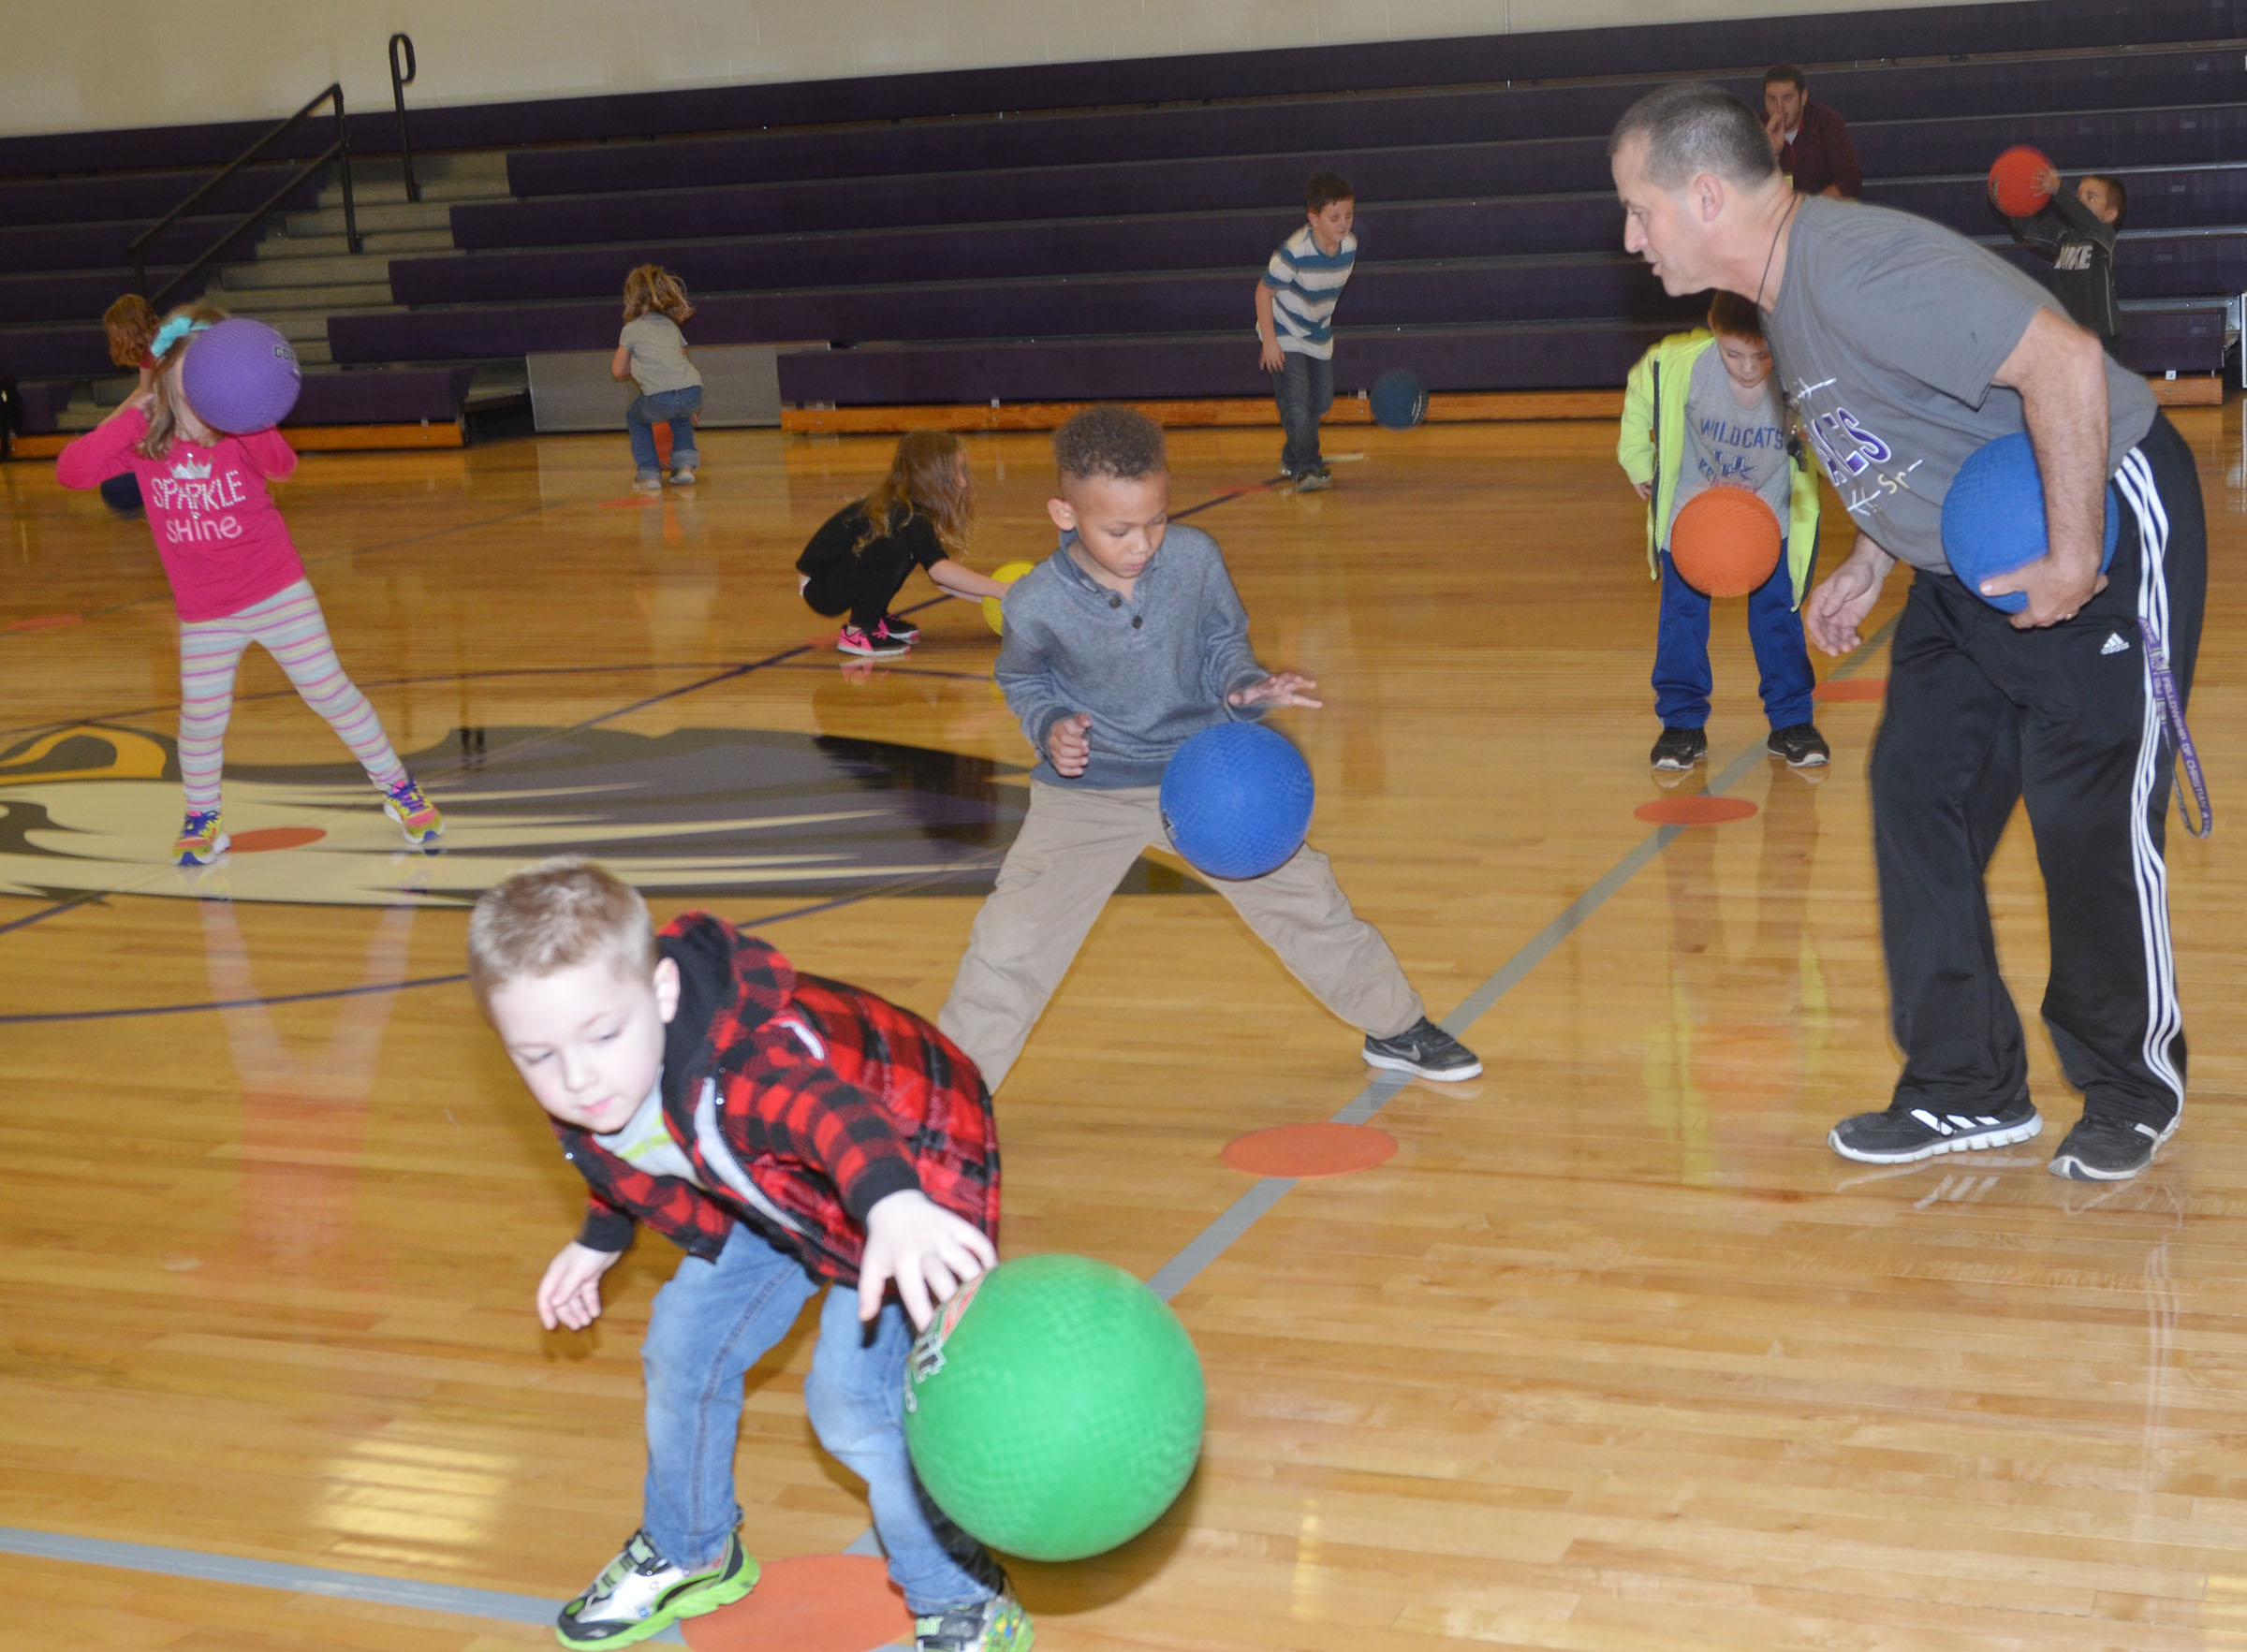 CES physical education teacher Lynn Kearney helps his students practice dribbling in the new CES gymnasium.